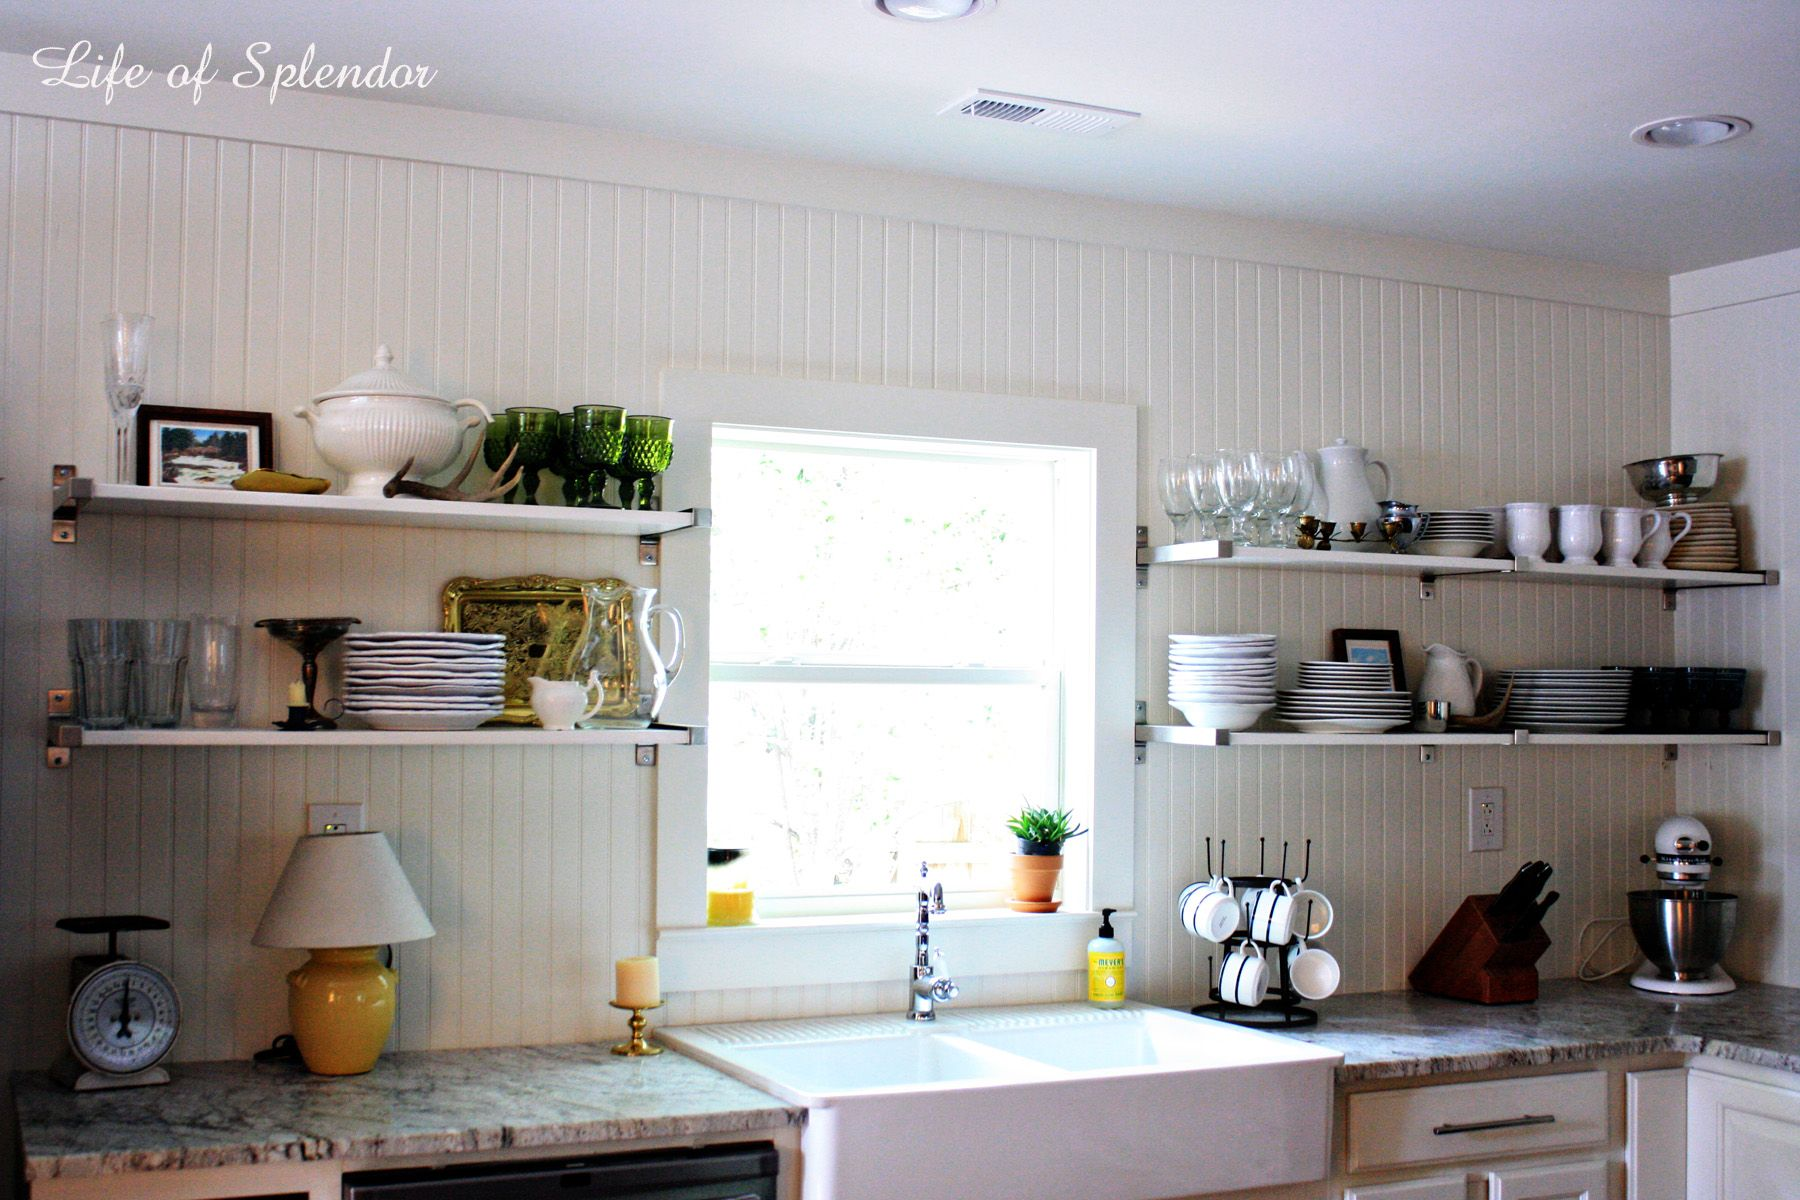 Open Shelving in the Kitchen and Some Updates | Open shelves, Open on white galley kitchen design ideas, stove kitchen design ideas, open galley kitchen remodel, walk in closet design ideas,